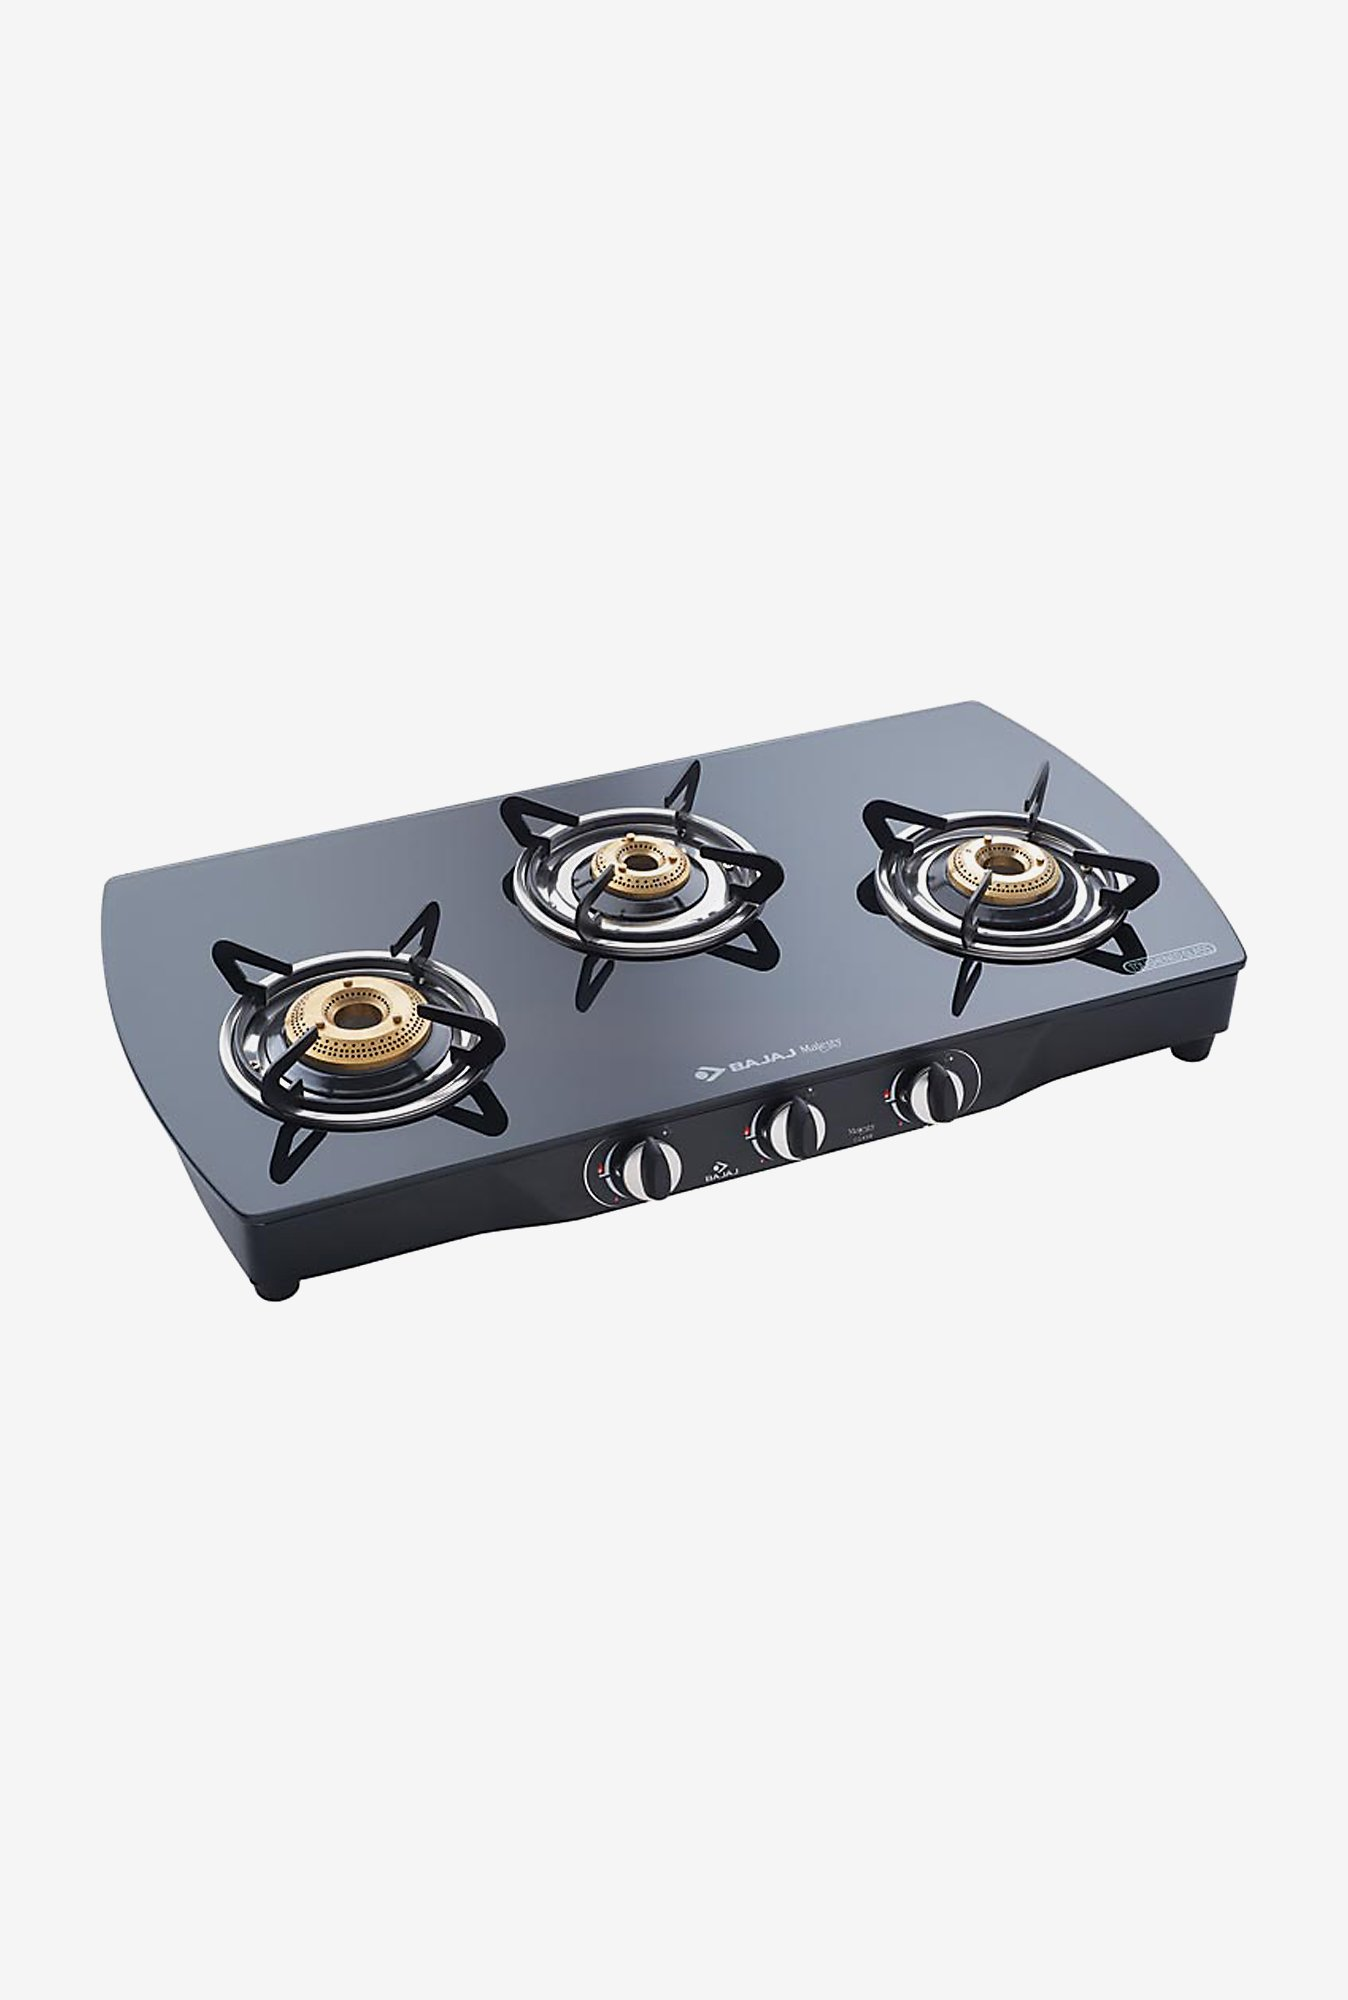 Bajaj CGX9 Glass Top 3 Burner Gas Cooktops (Black)